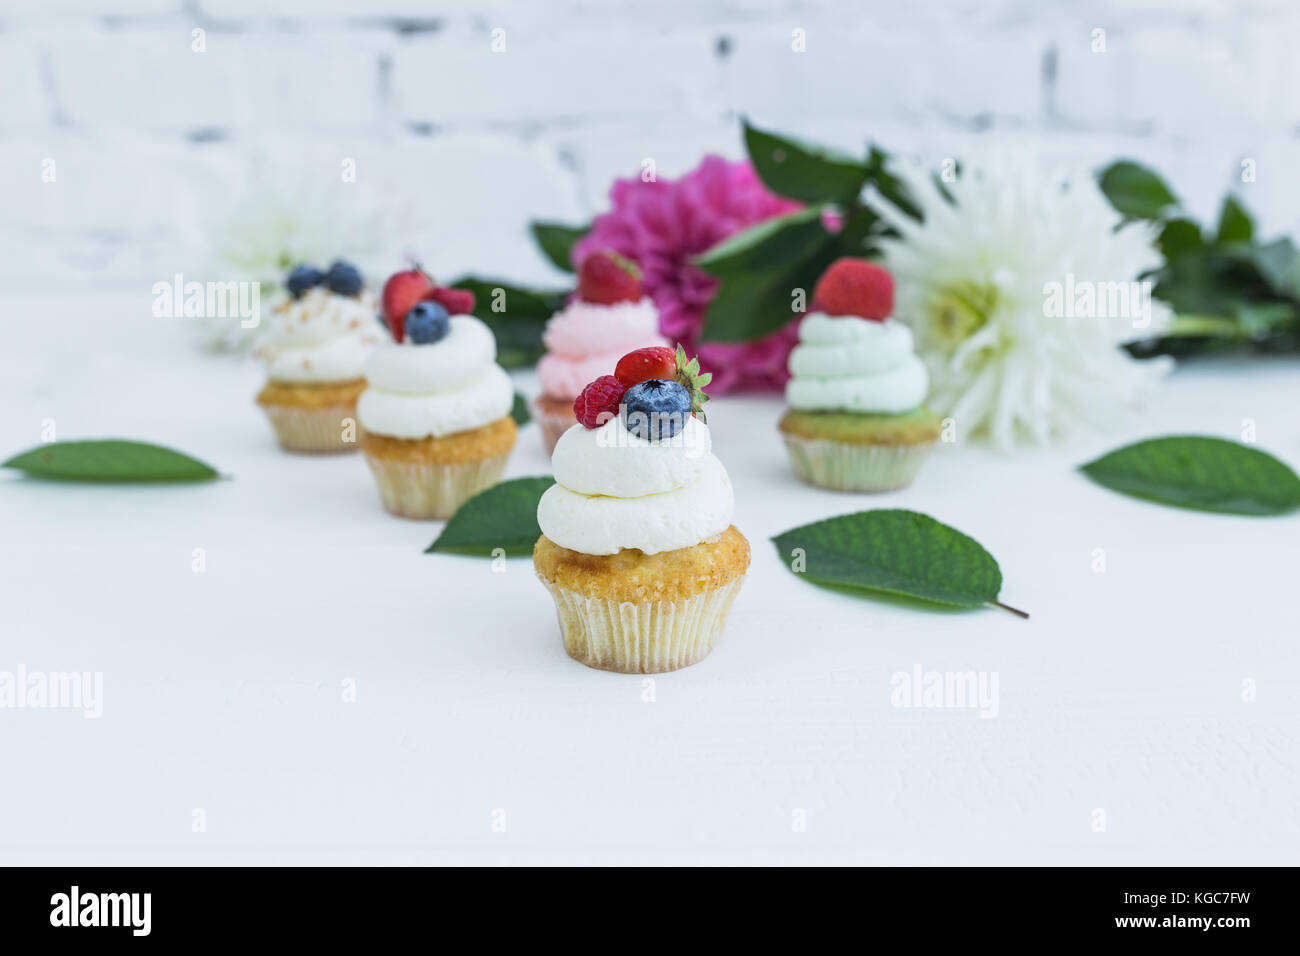 Various cupcakes with fresh berries flowers and leaves. White background. Stock Photo